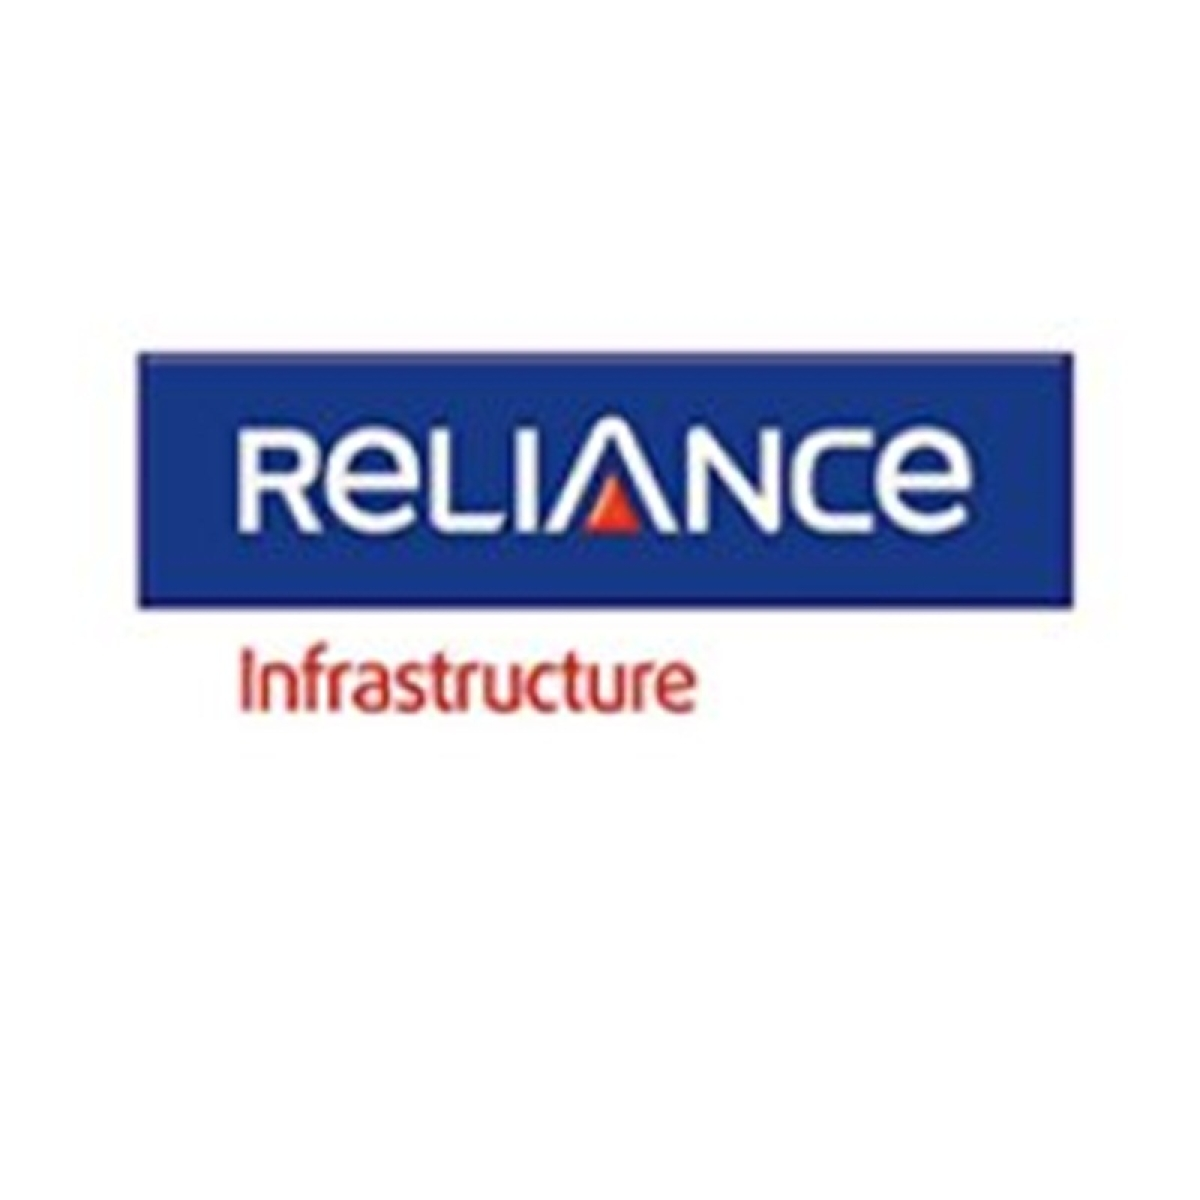 Here is how Reliance Infrastructure's 8 lakh shareholders may benefit